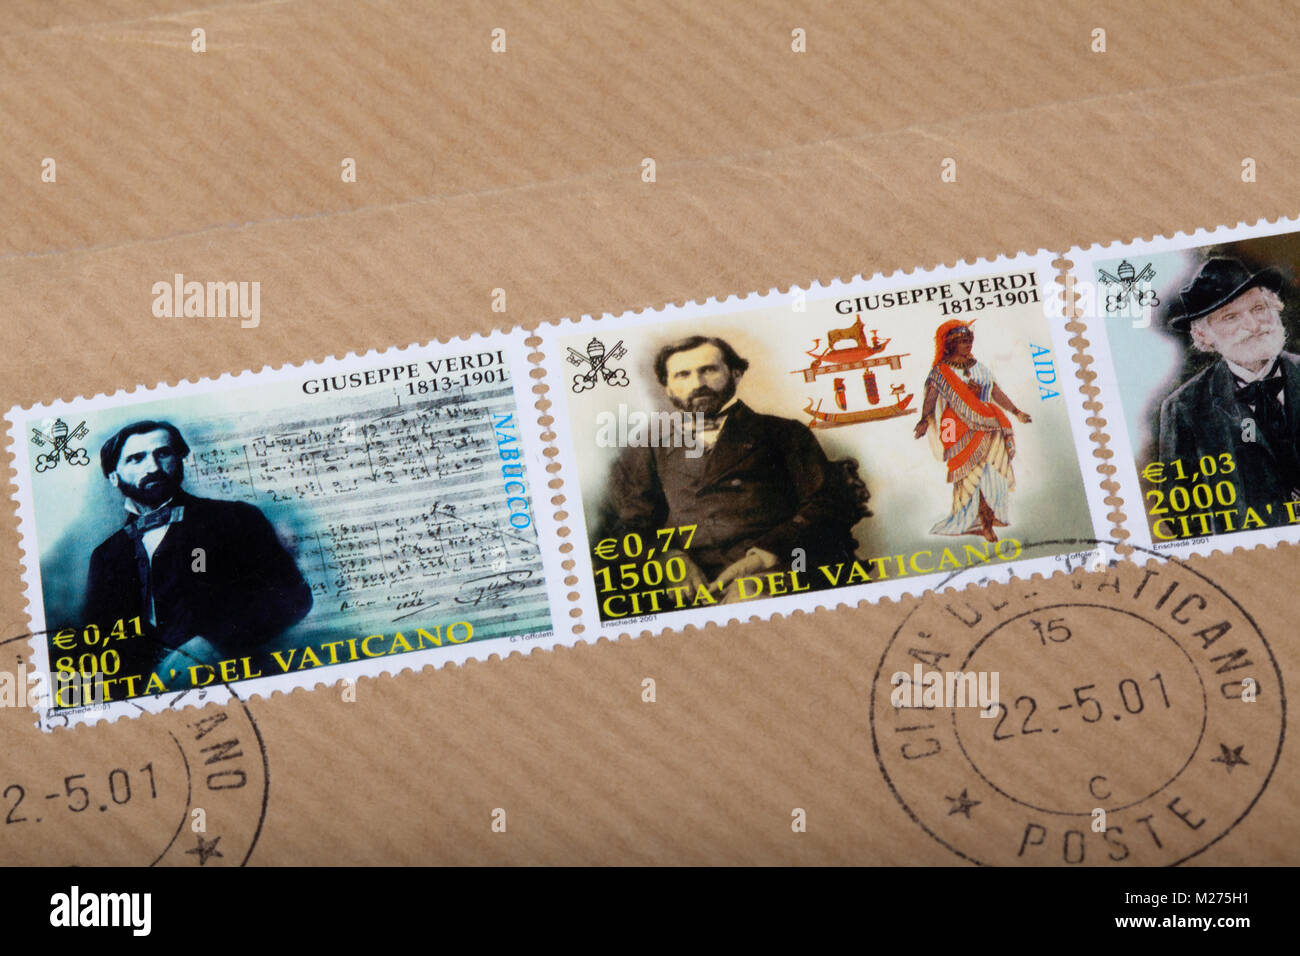 Stamps from the Vatican on a letter, Stamped, Vatican, Italy, Europe, Gestempelte Briefmarken aus dem Vatikan, Giuseppe - Stock Image